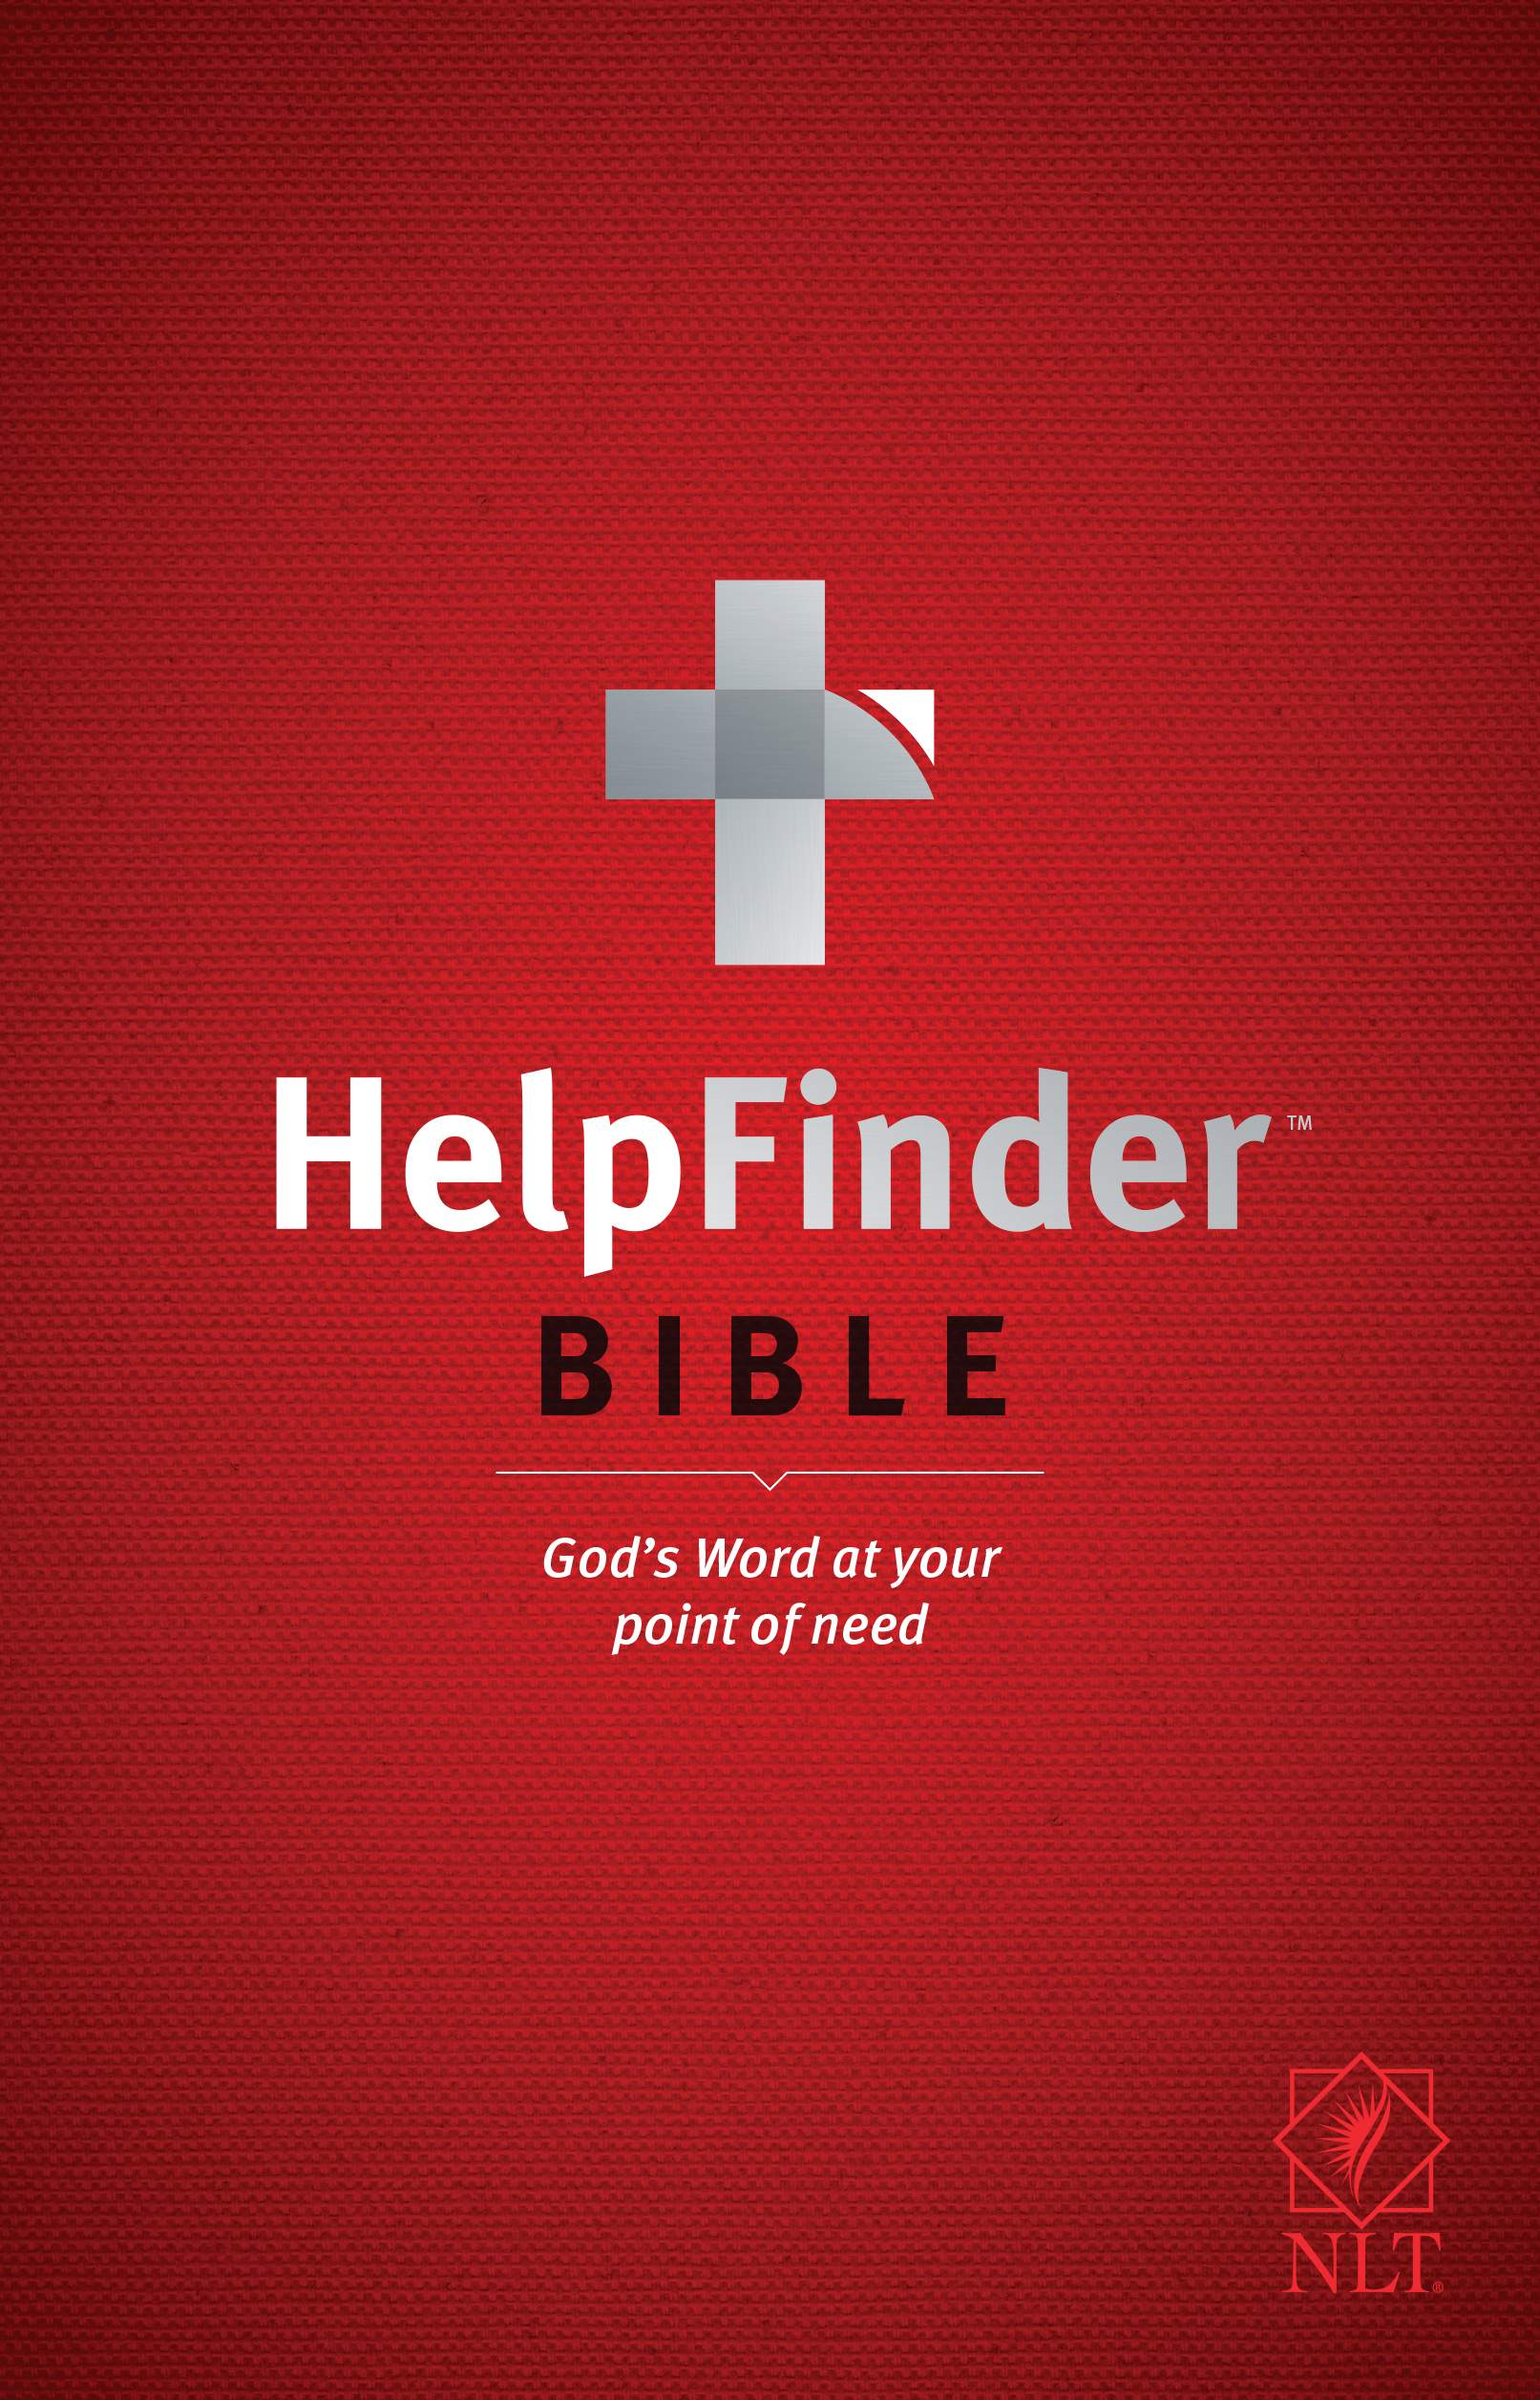 Cover image of the HelpFinder Bible, Hardcover